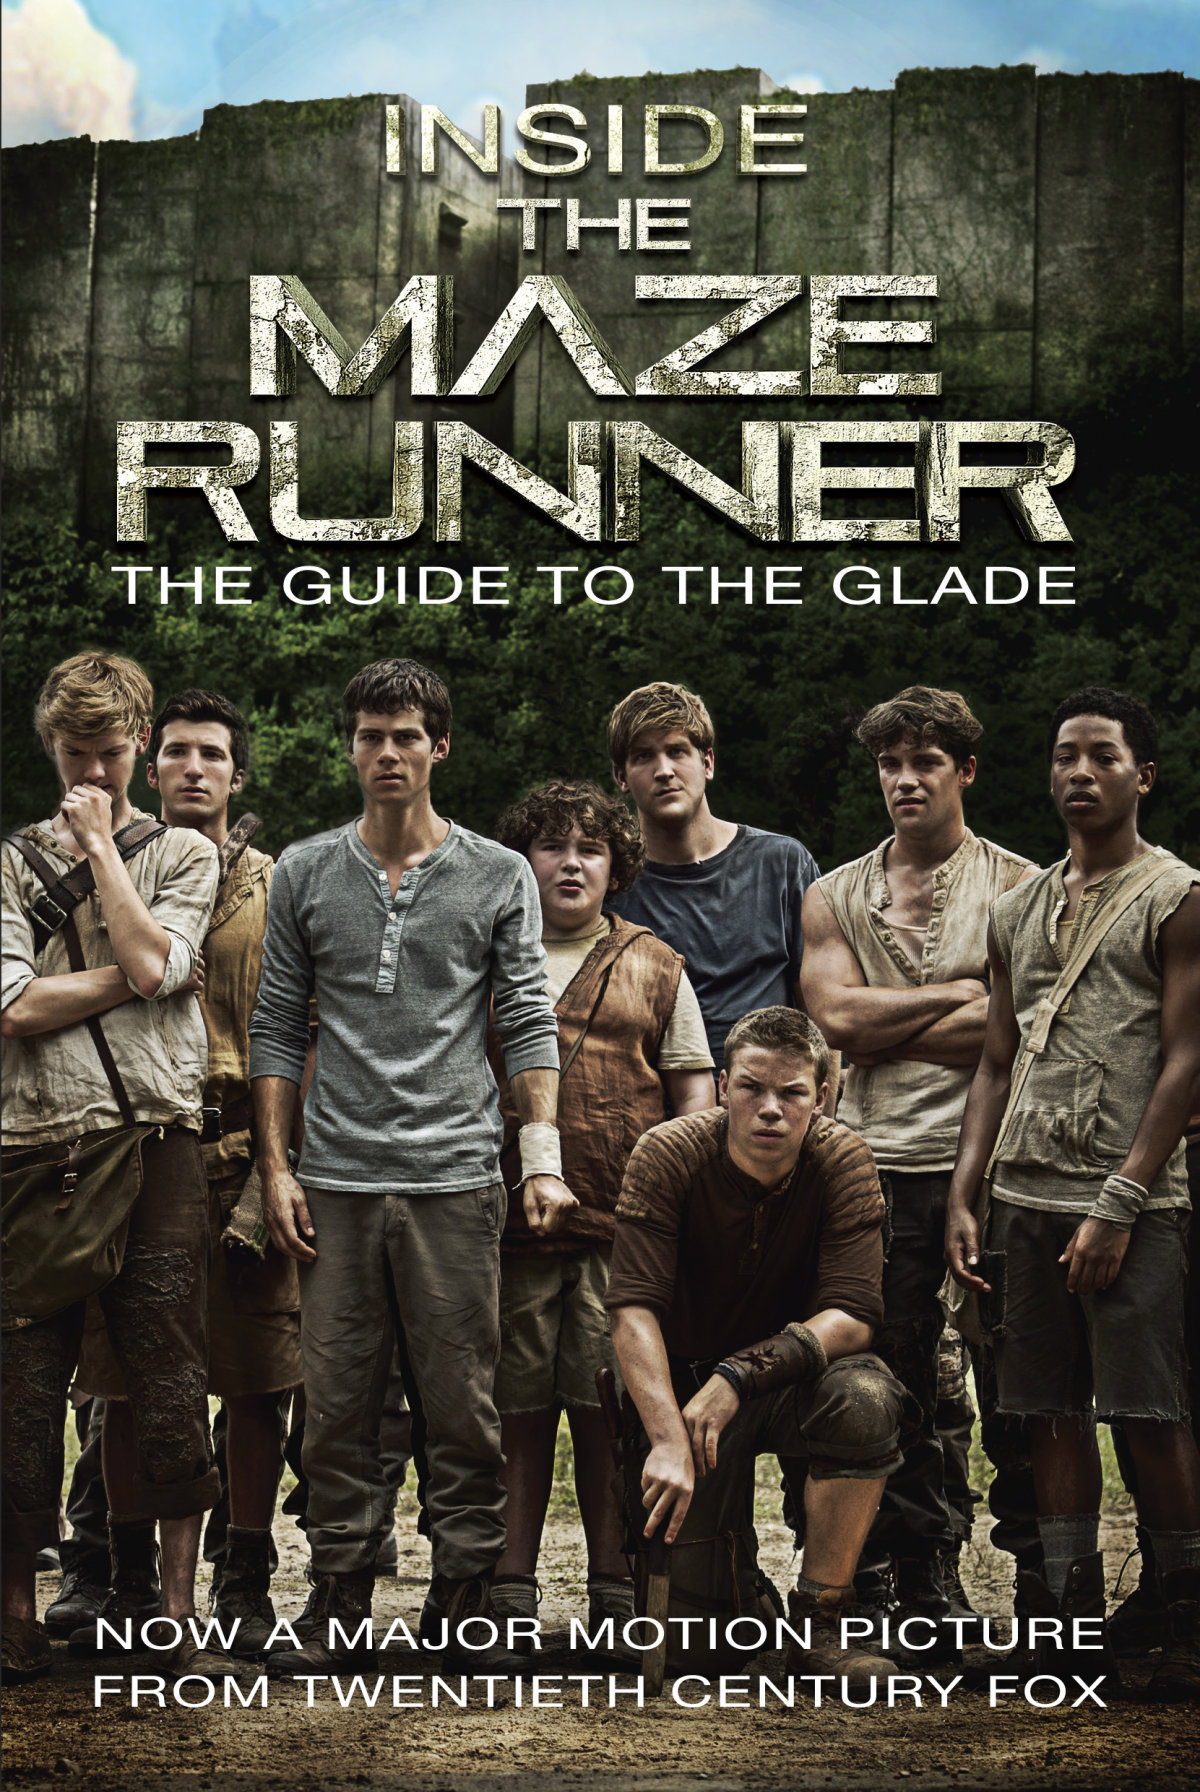 The Maze Runner Free Download on PC (Windows 7, 8, XP) | Download ...